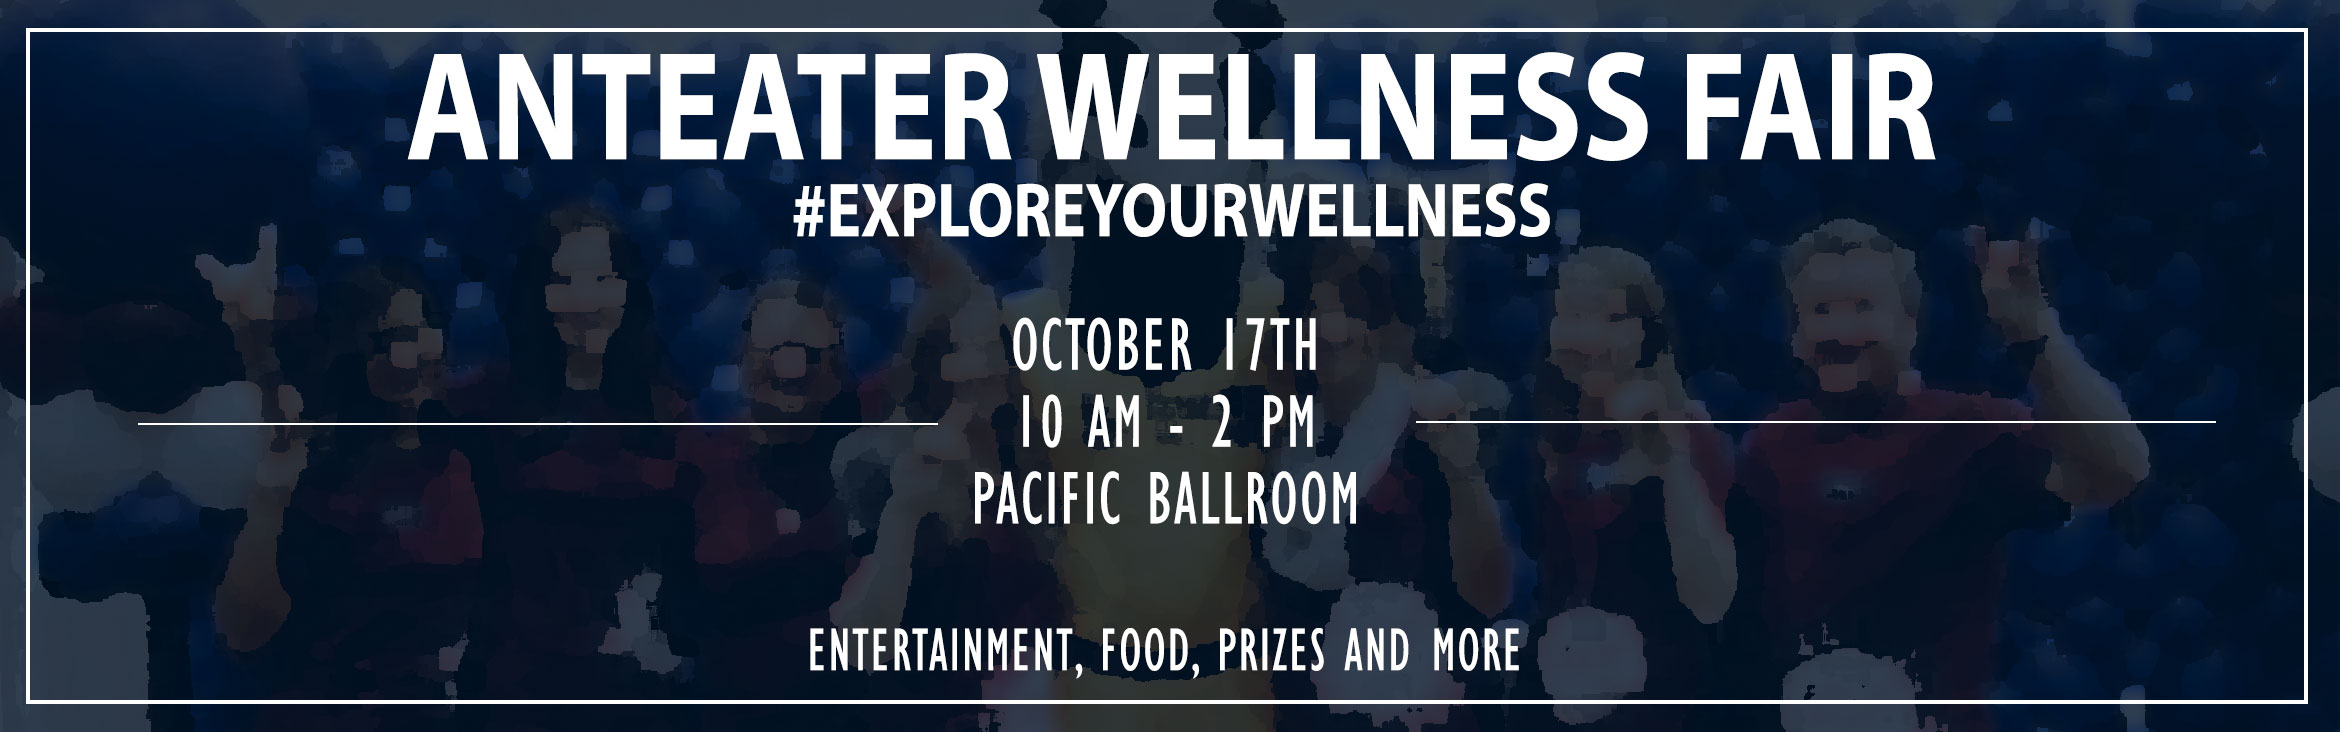 ANTEATER WELLNESS FAIR, #EXPLOREYOURWELLNESS, OCTOBER 17TH 10 AM - 2 PM, PACIFIC BALLROOM, ENTERTAINMENT, FOOD, PRIZES AND MORE